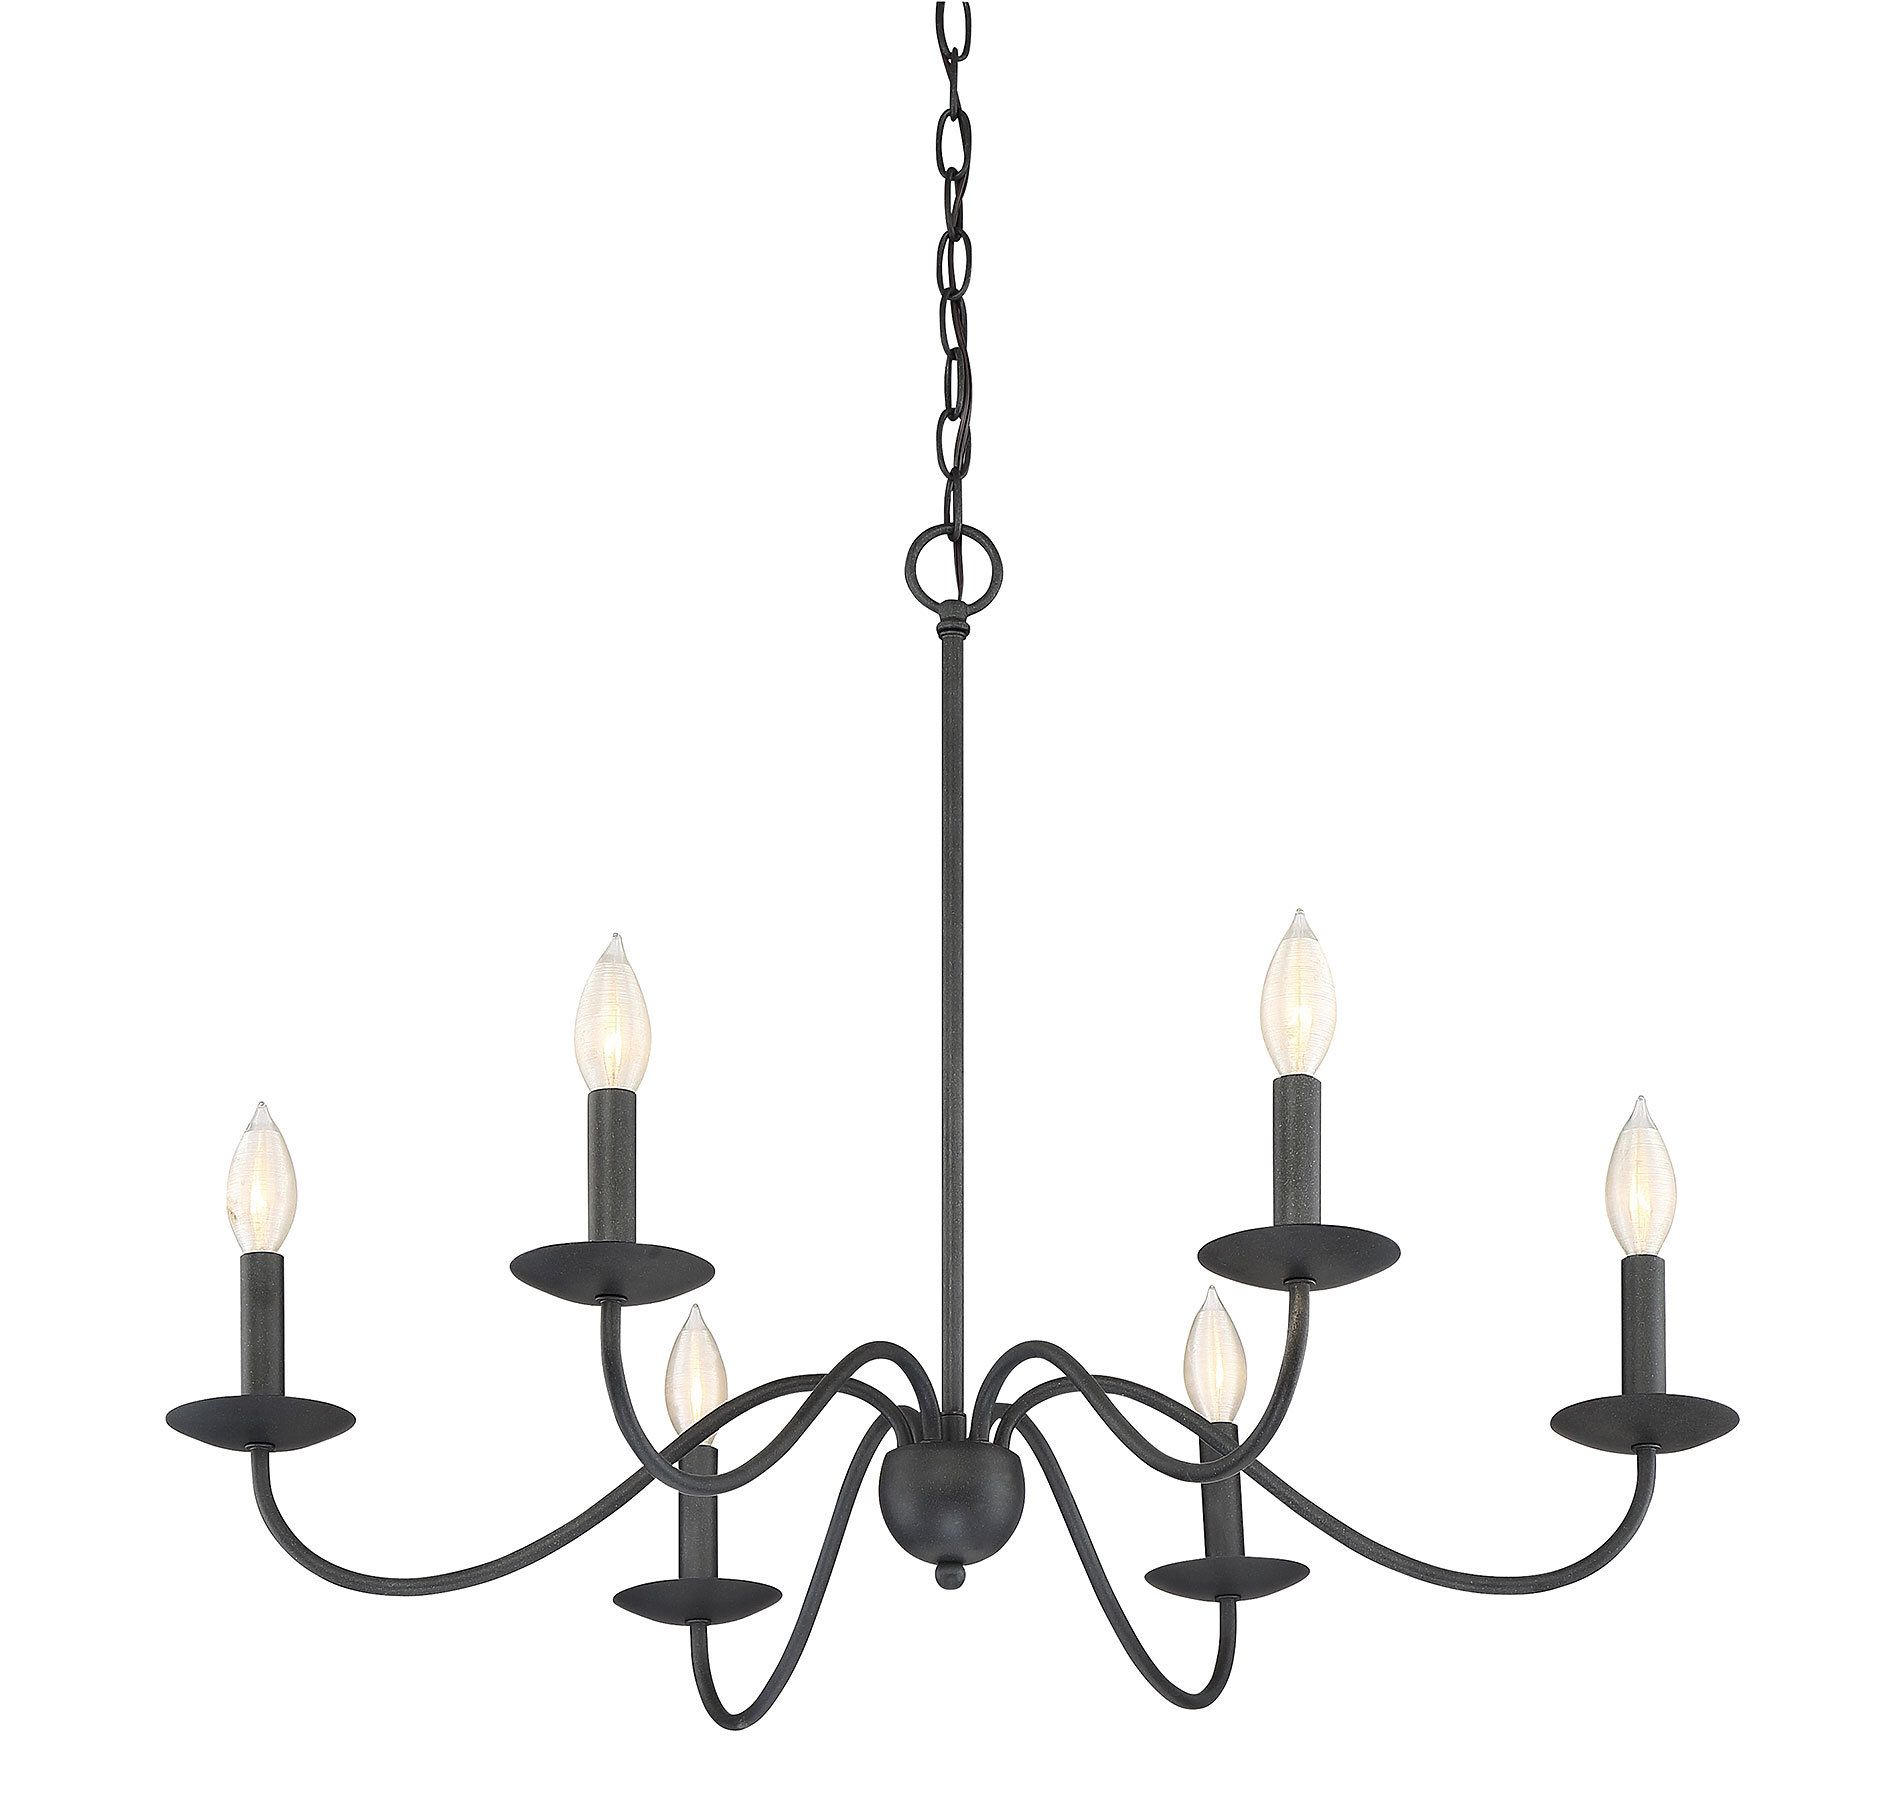 Perseus 6 Light Chandelier In 2019 | Dining Room Pertaining To Hamza 6 Light Candle Style Chandeliers (View 13 of 30)